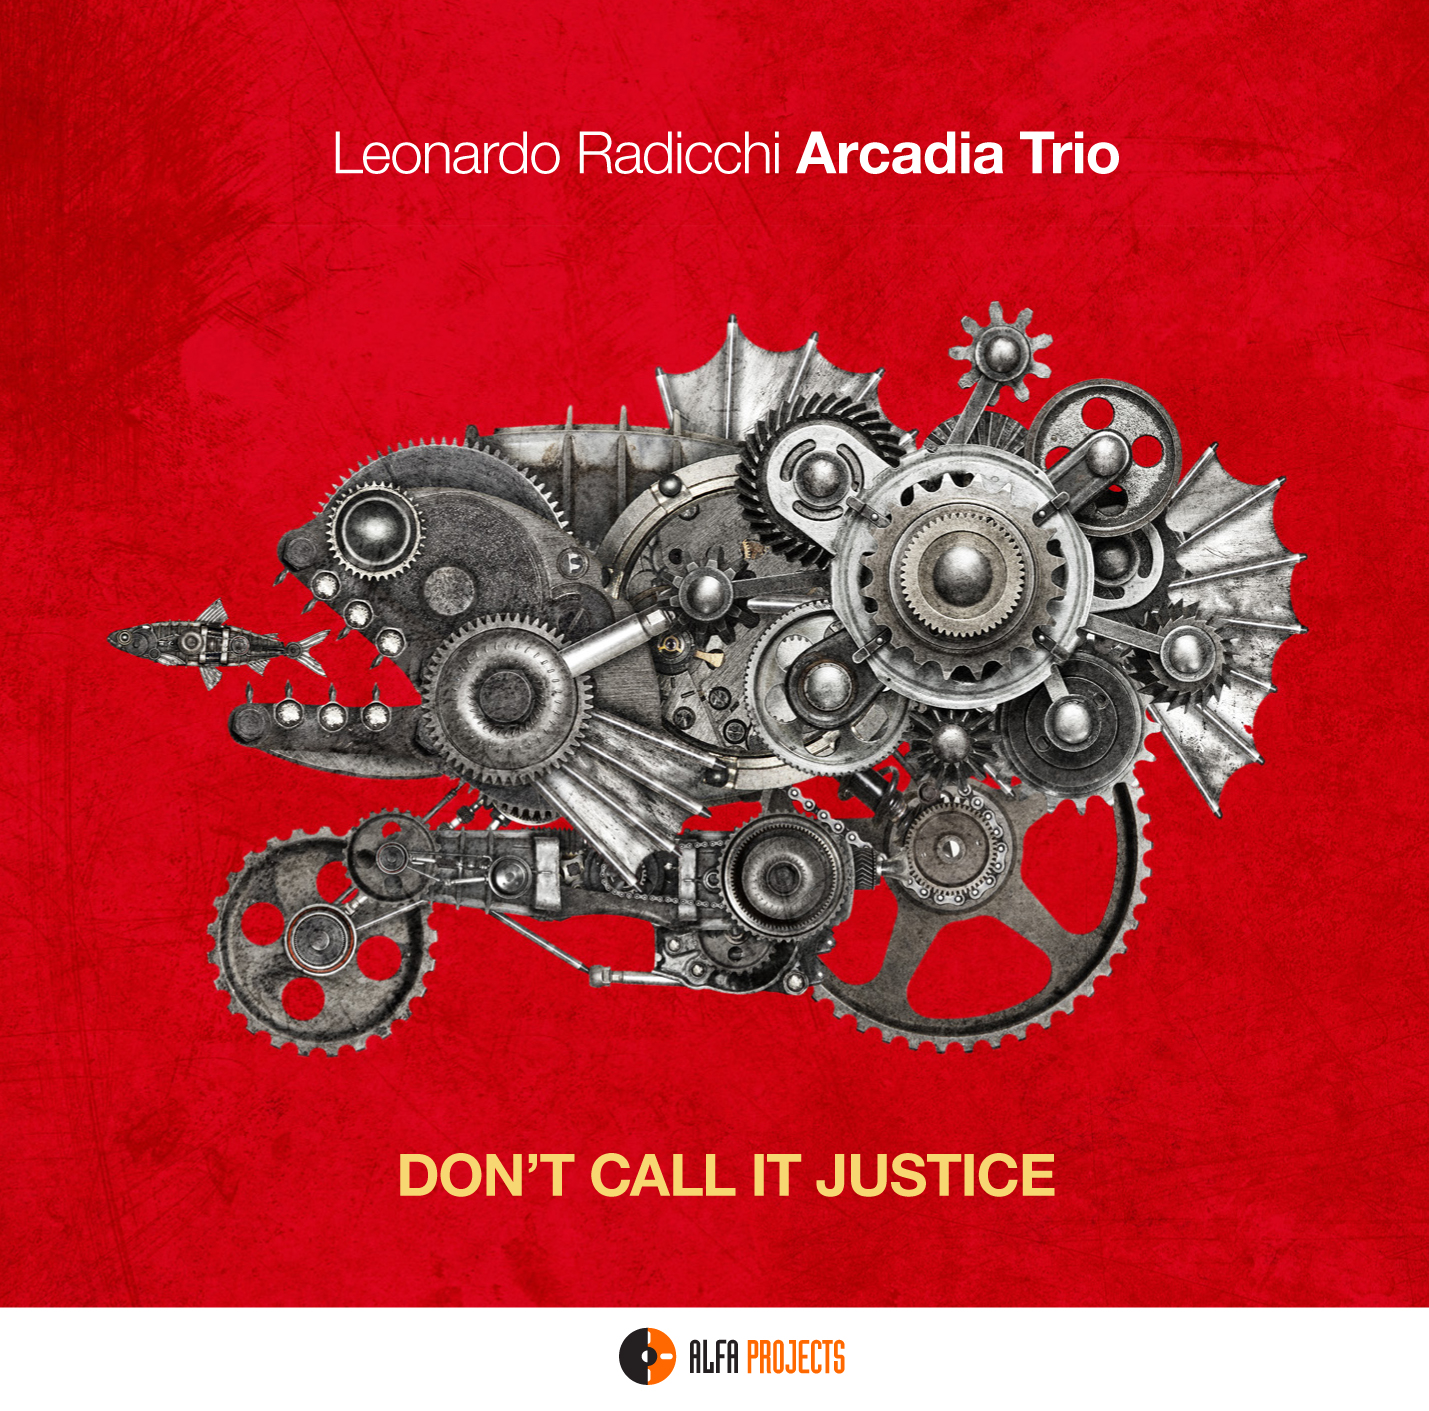 Copertina Don't call it justice.jpg